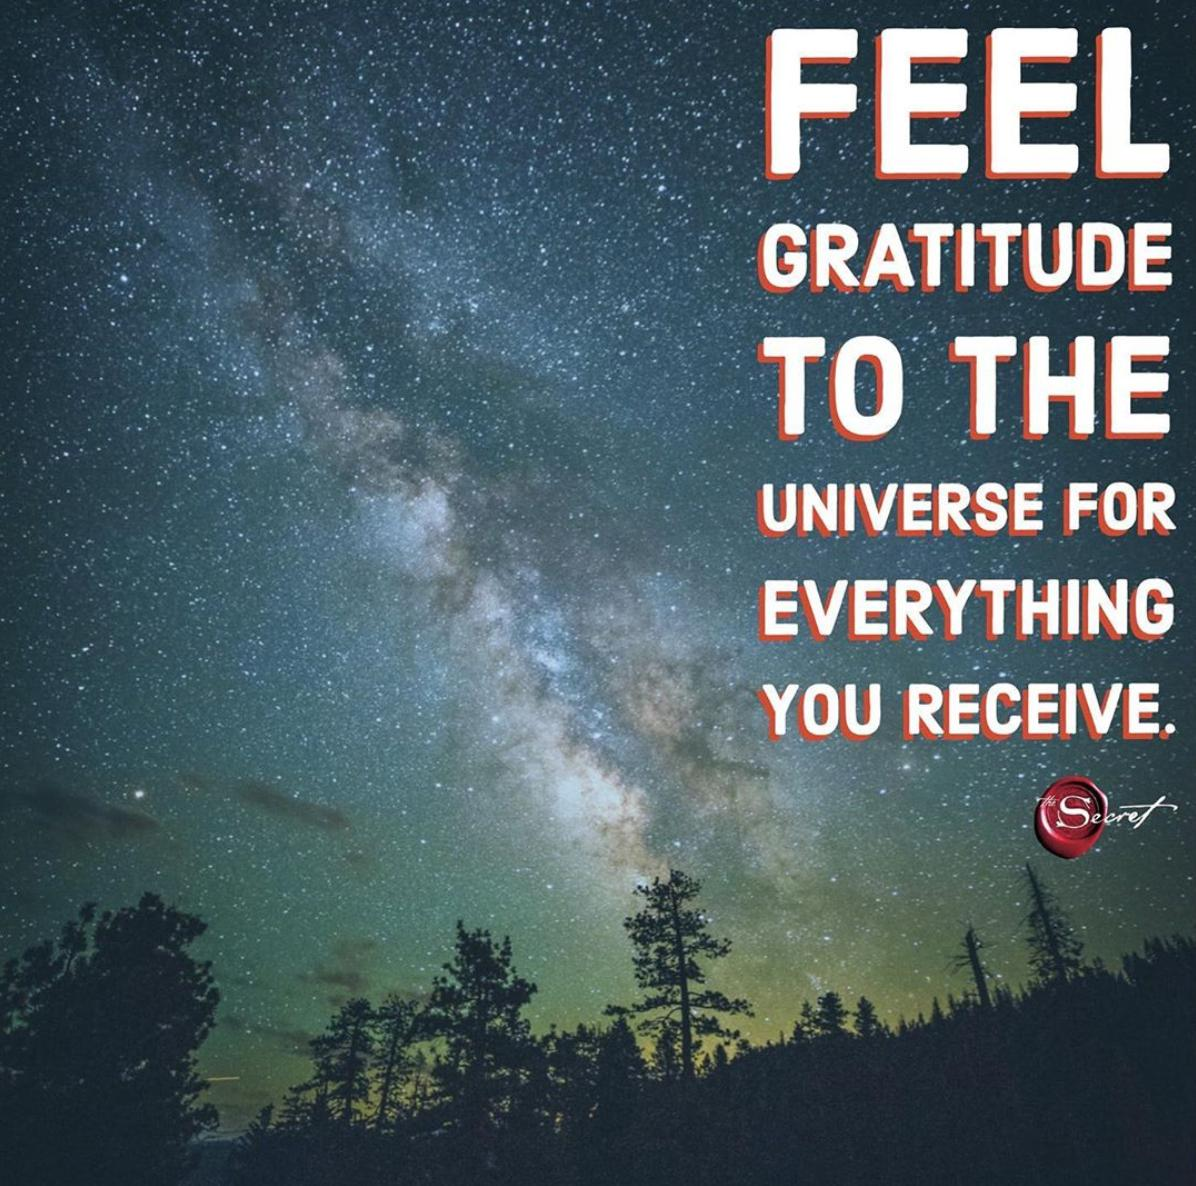 Feel genuine gratitude to the Universe for everything you receive in your life. What wonders have you received lately? <br>http://pic.twitter.com/e5cctLeuZy